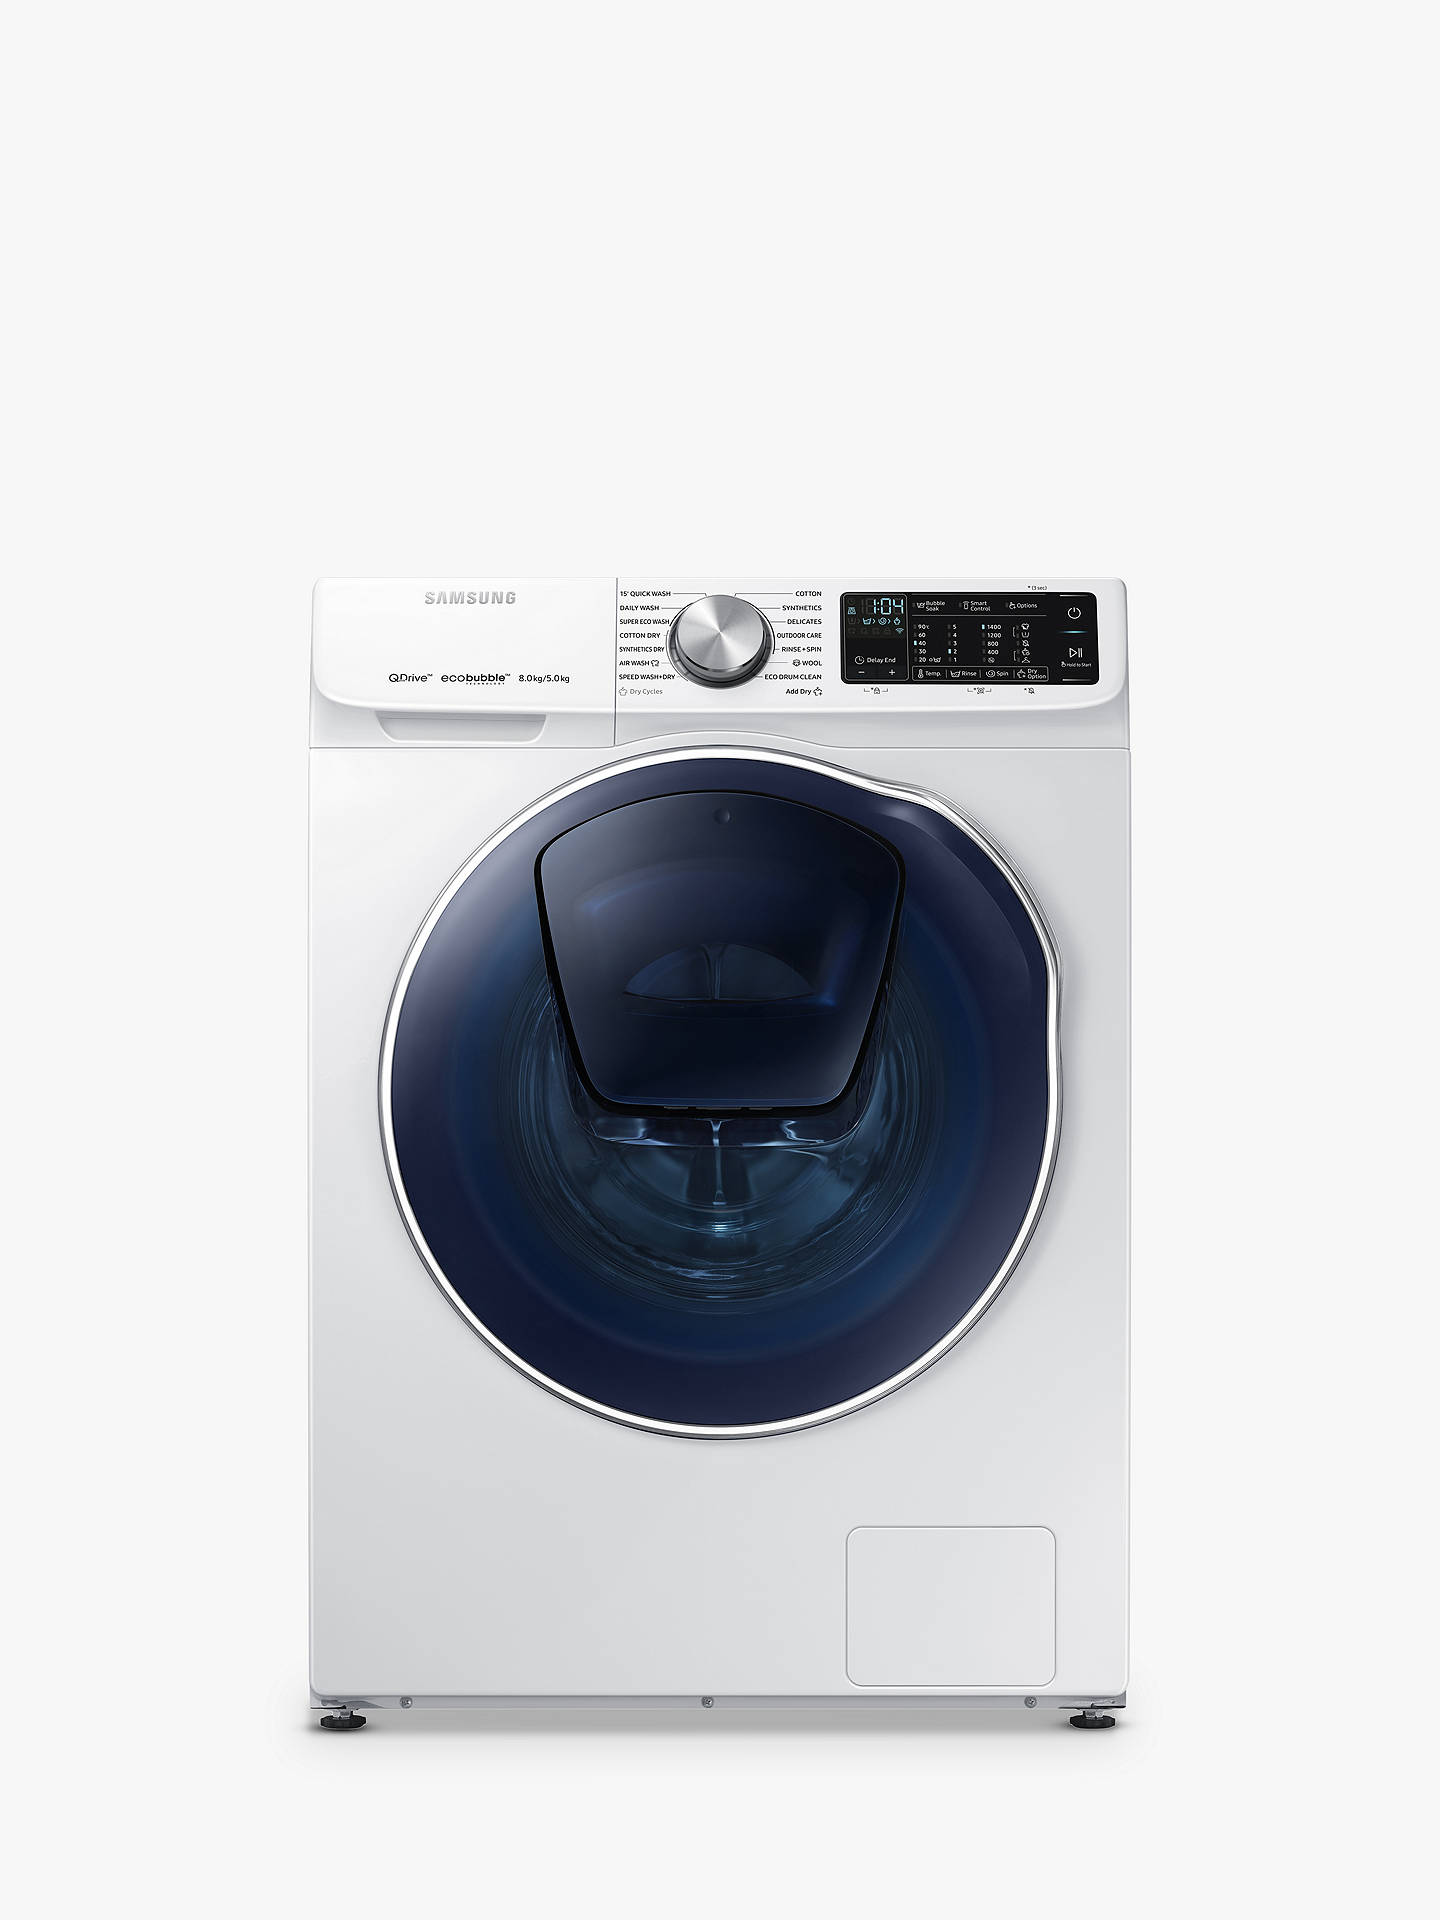 BuySamsung WD80N645OOW Washer Dryer, 8kg Wash/5kg Dry Load, A Energy Rating, 1400rpm Spin, White Online at johnlewis.com